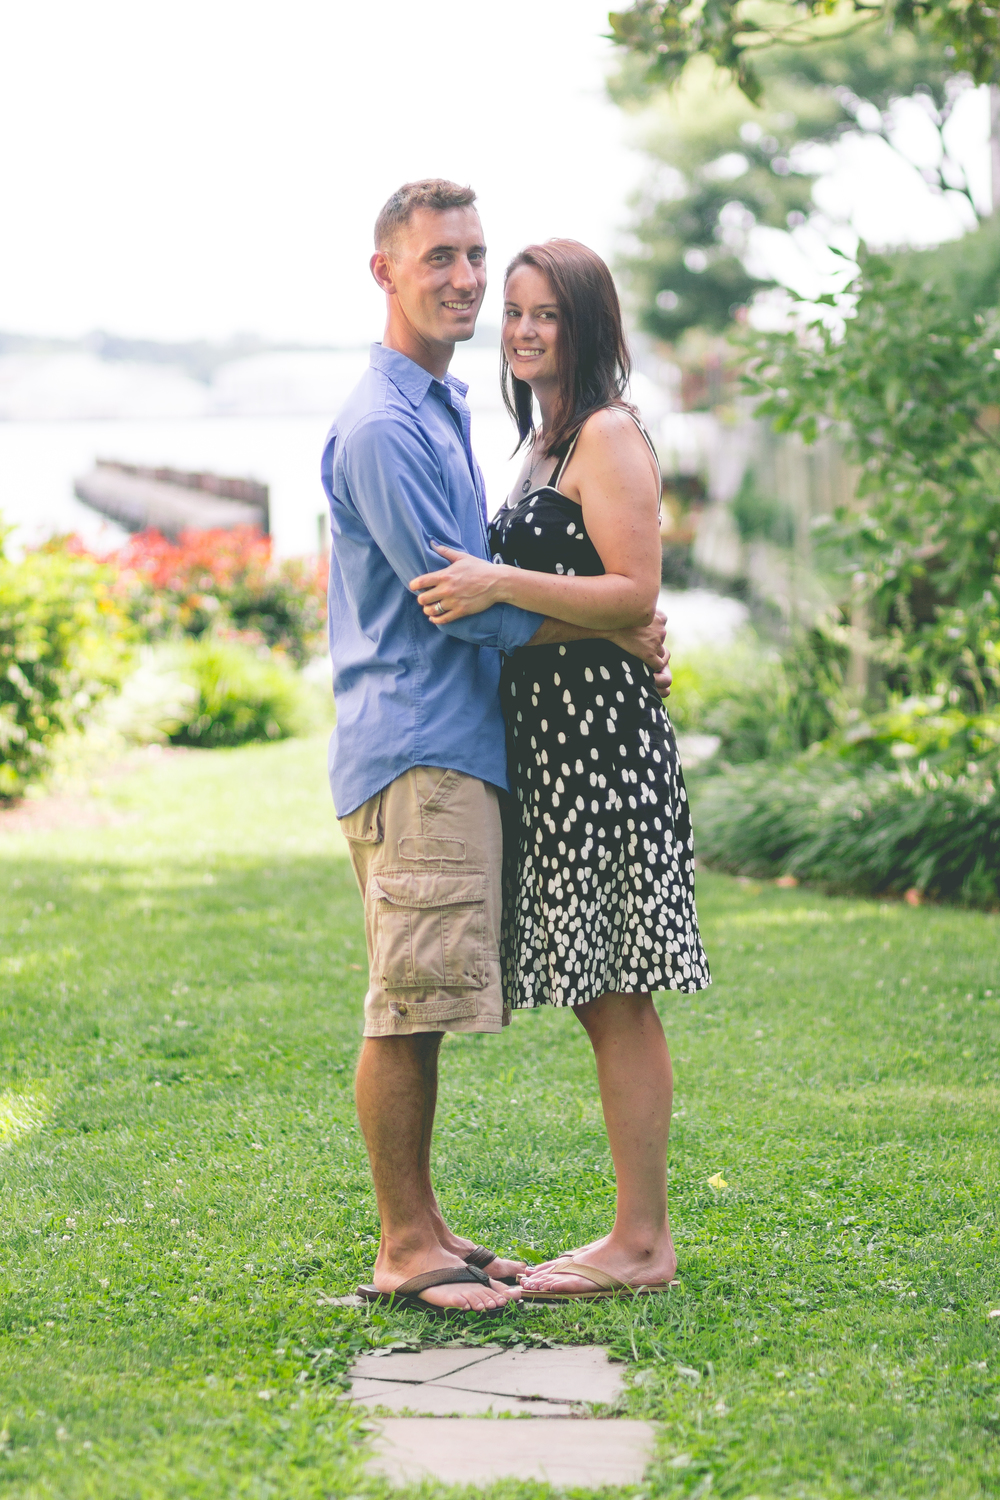 Annapolis_Cathee_Tony_Engagement_Photography-18.jpg